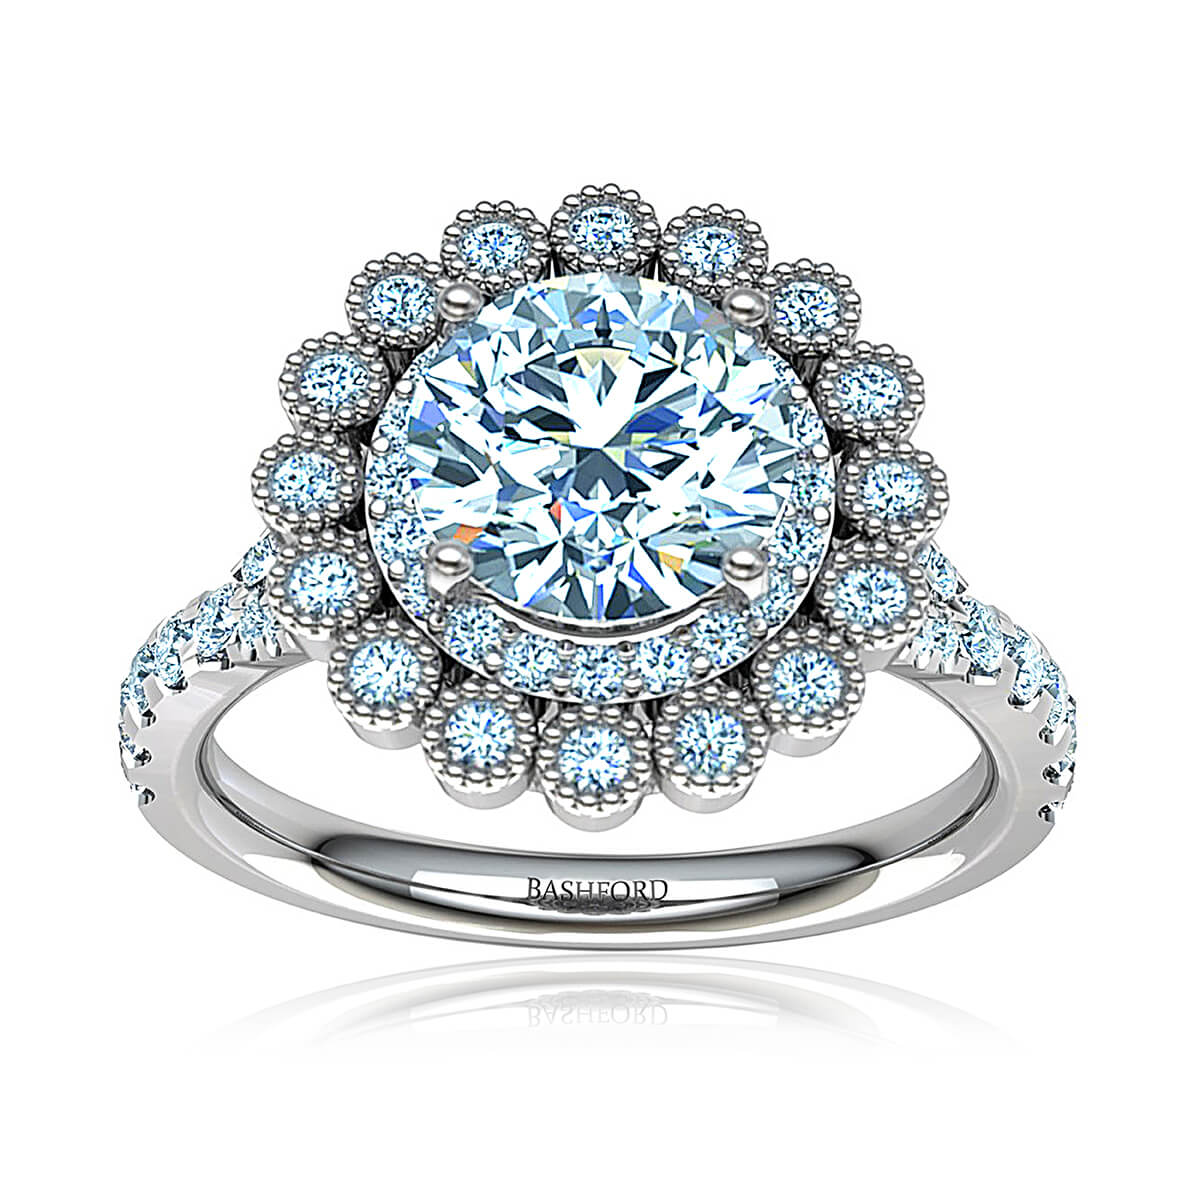 Tularosa Diamond Ring (1/2 CT. TW.)